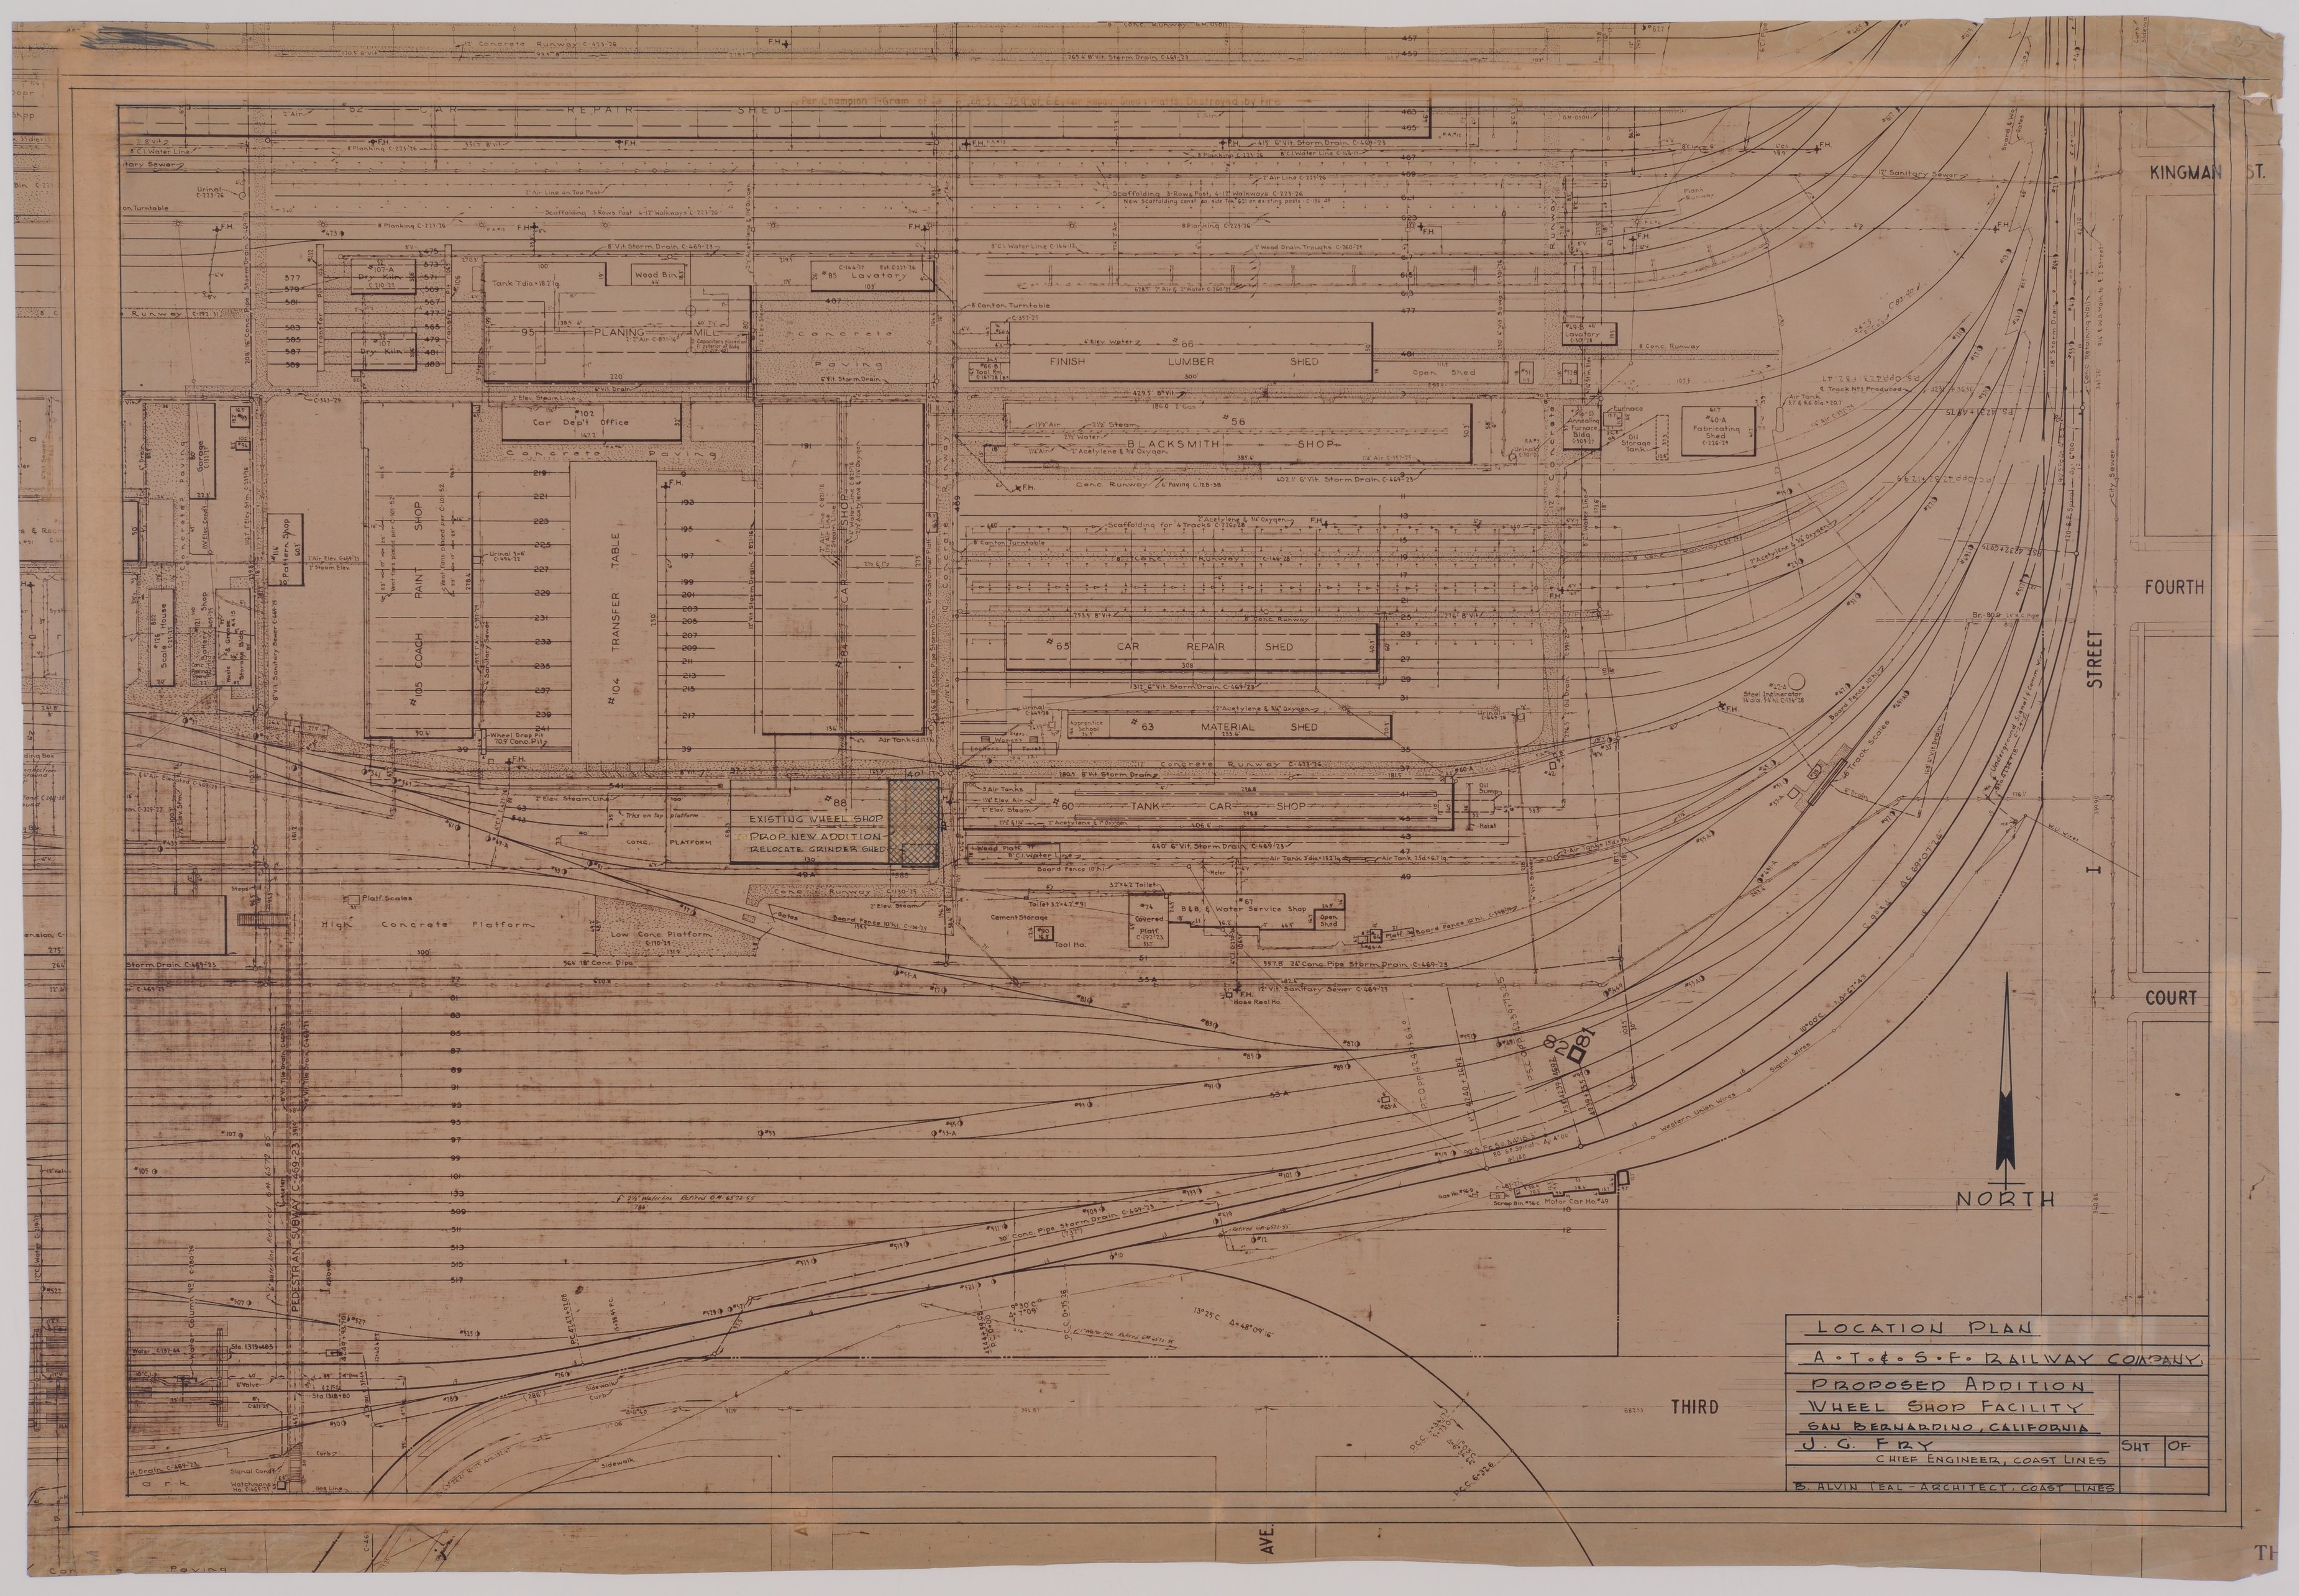 Drawing of Atchison, Topeka & Santa Fe Railway's proposed addition to the wheel shop facility in San Bernardino, California